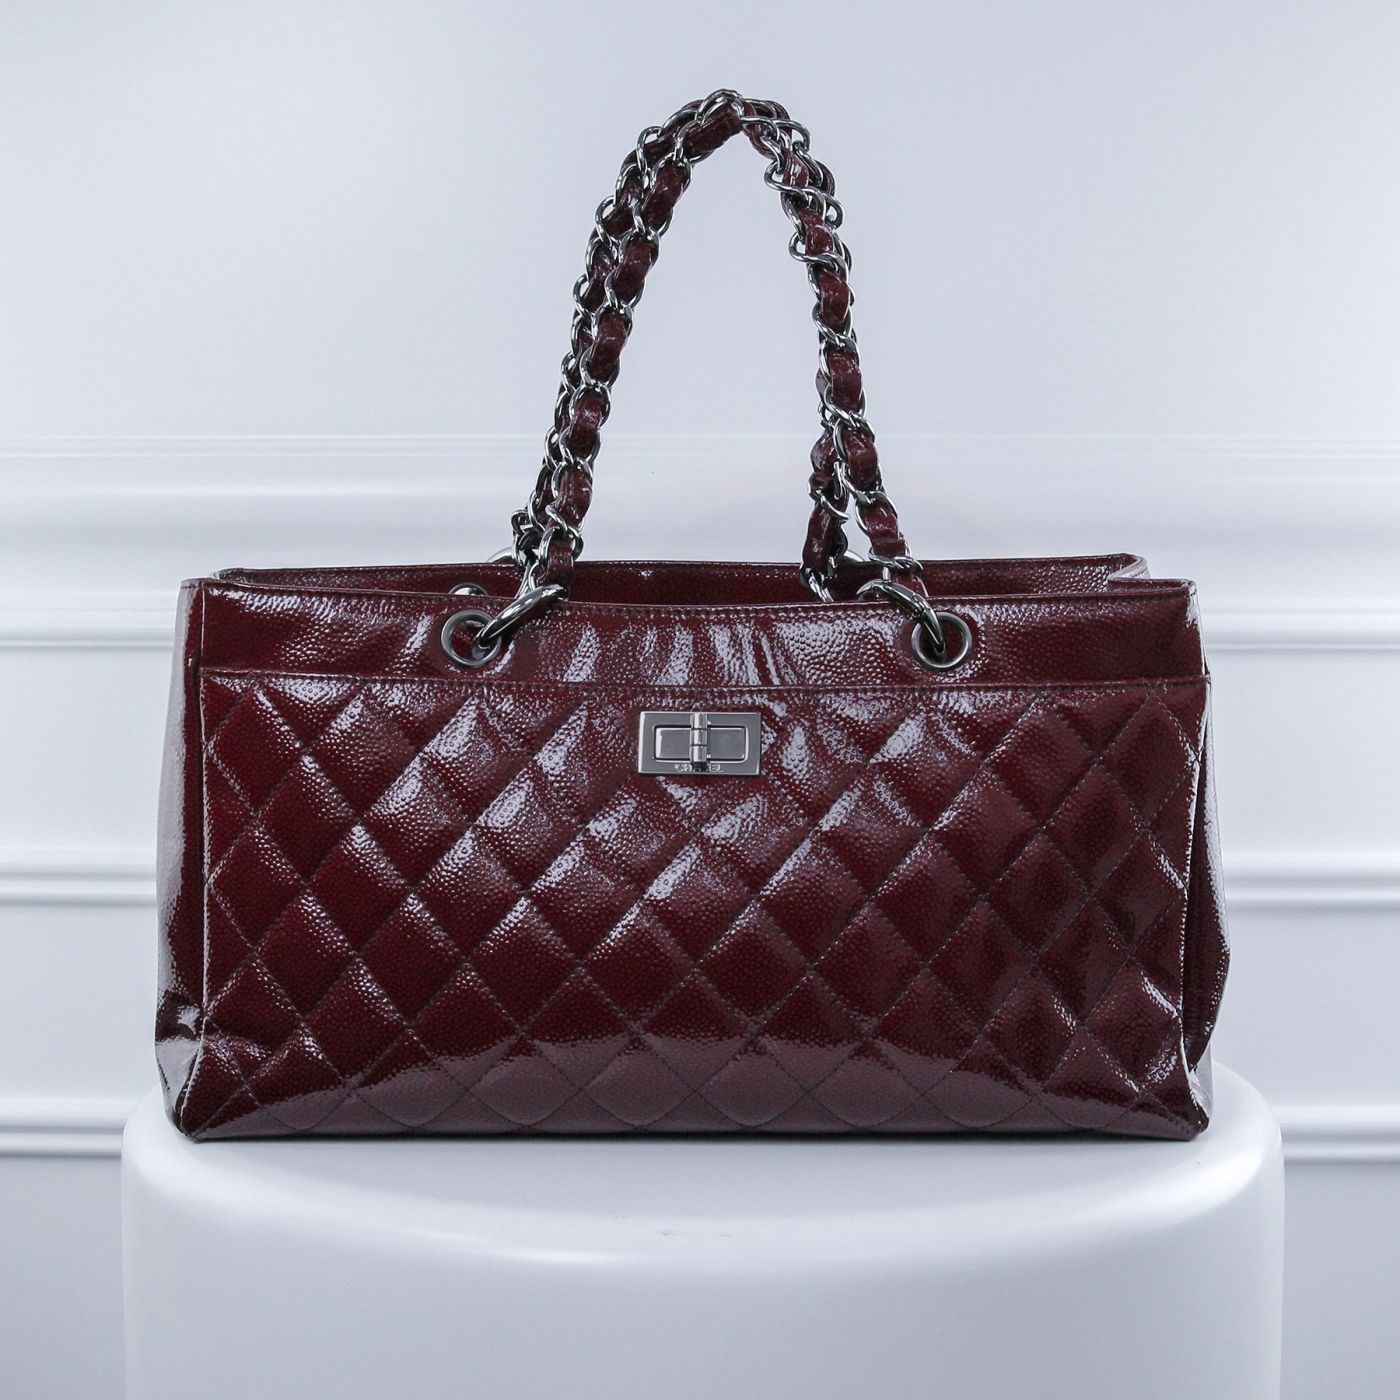 Chanel Dark Red Reissue Shopping Tote Bag